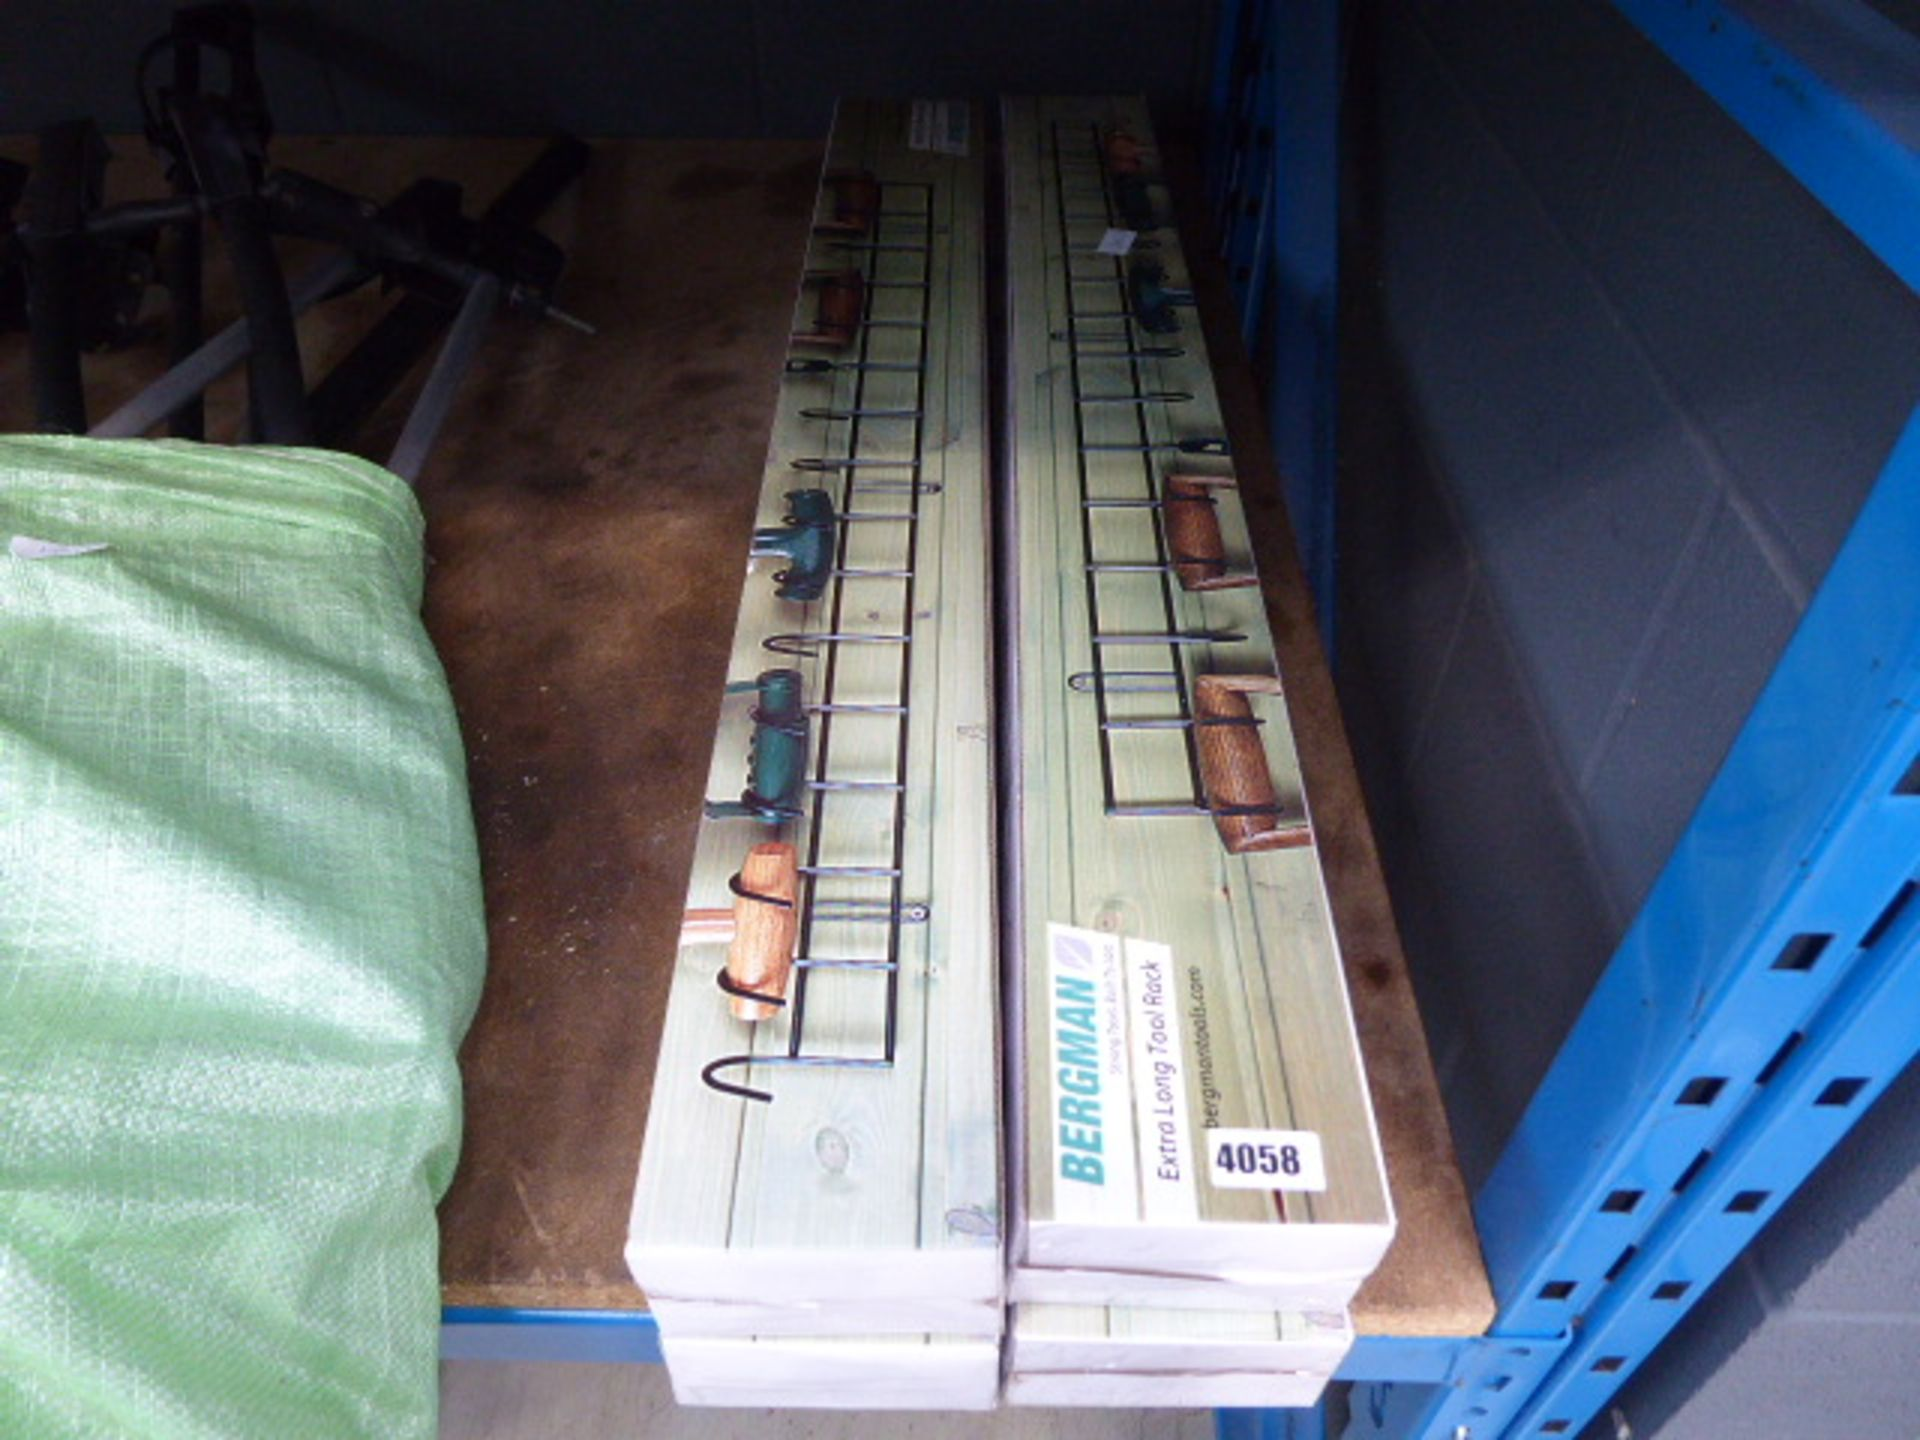 Lot 4058 - 4 boxes of tool racks